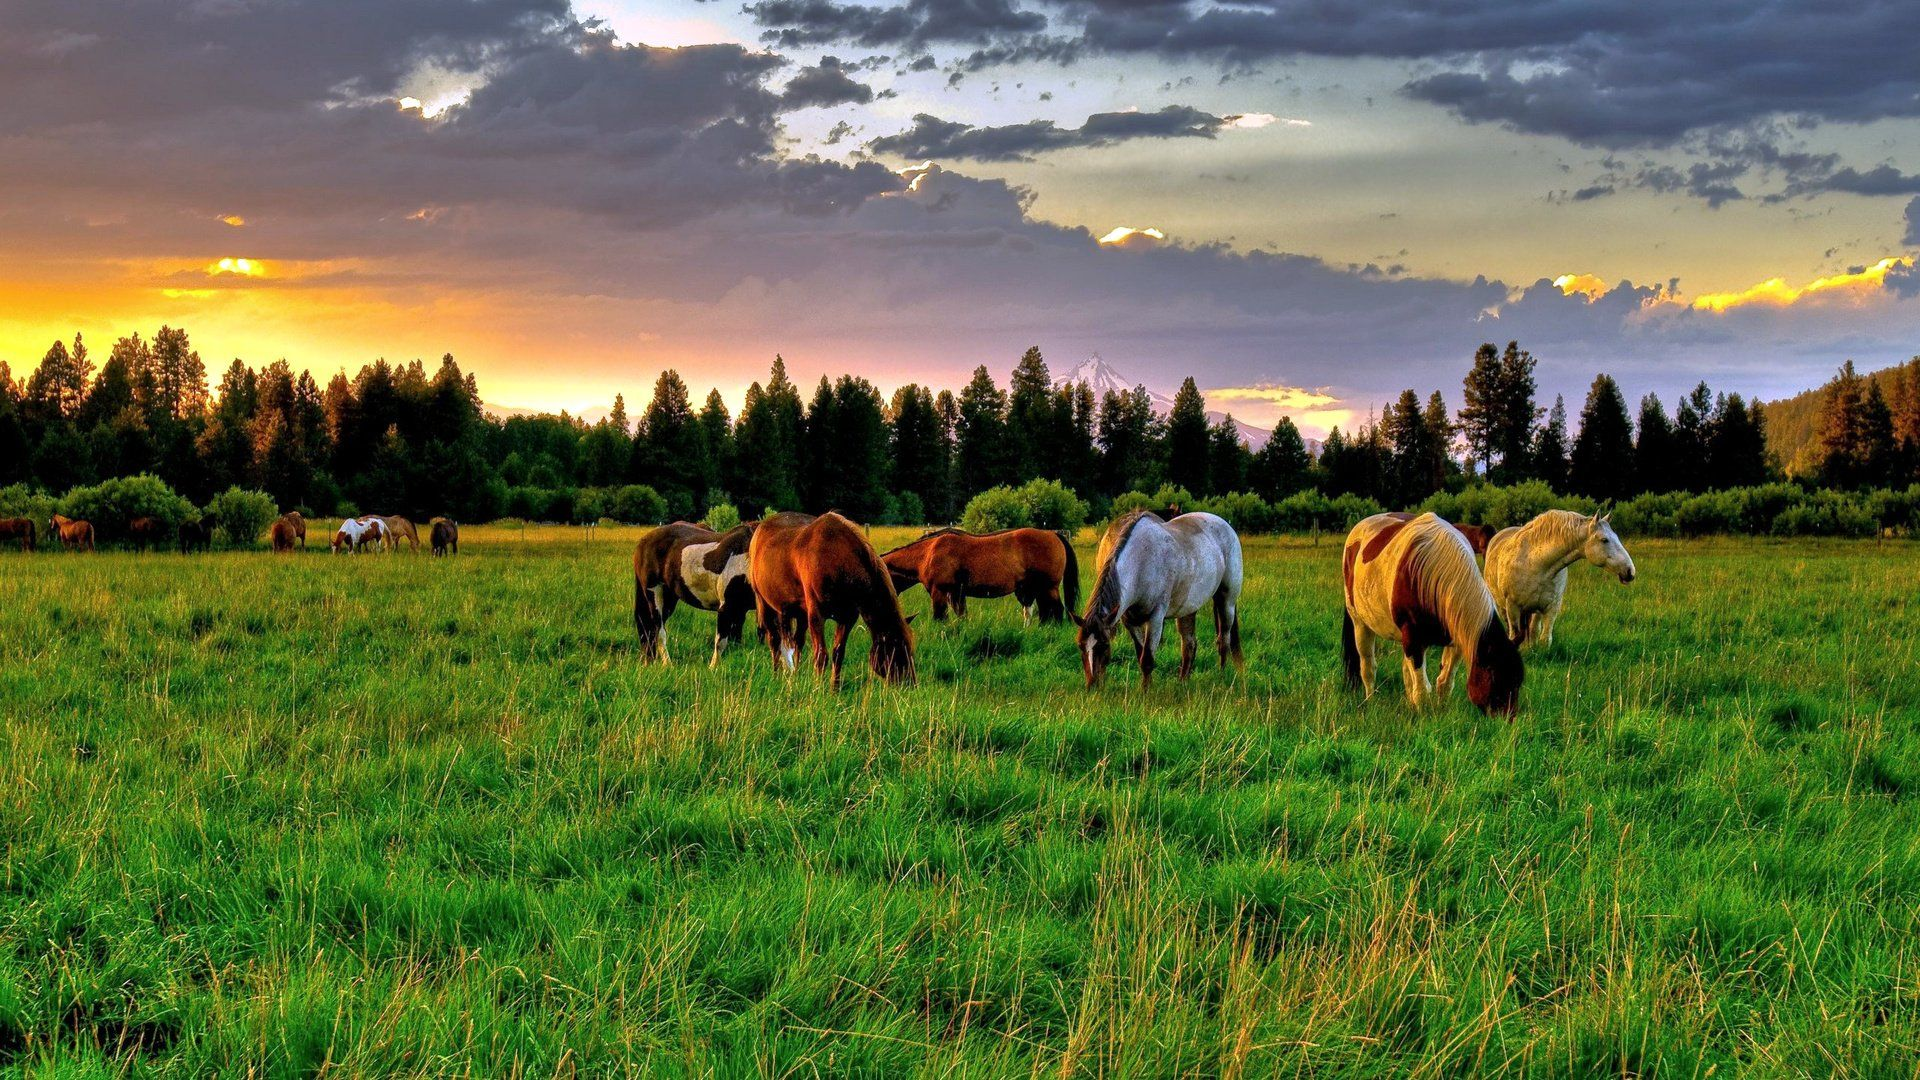 Beautiful Photo Of Horses In The Nature